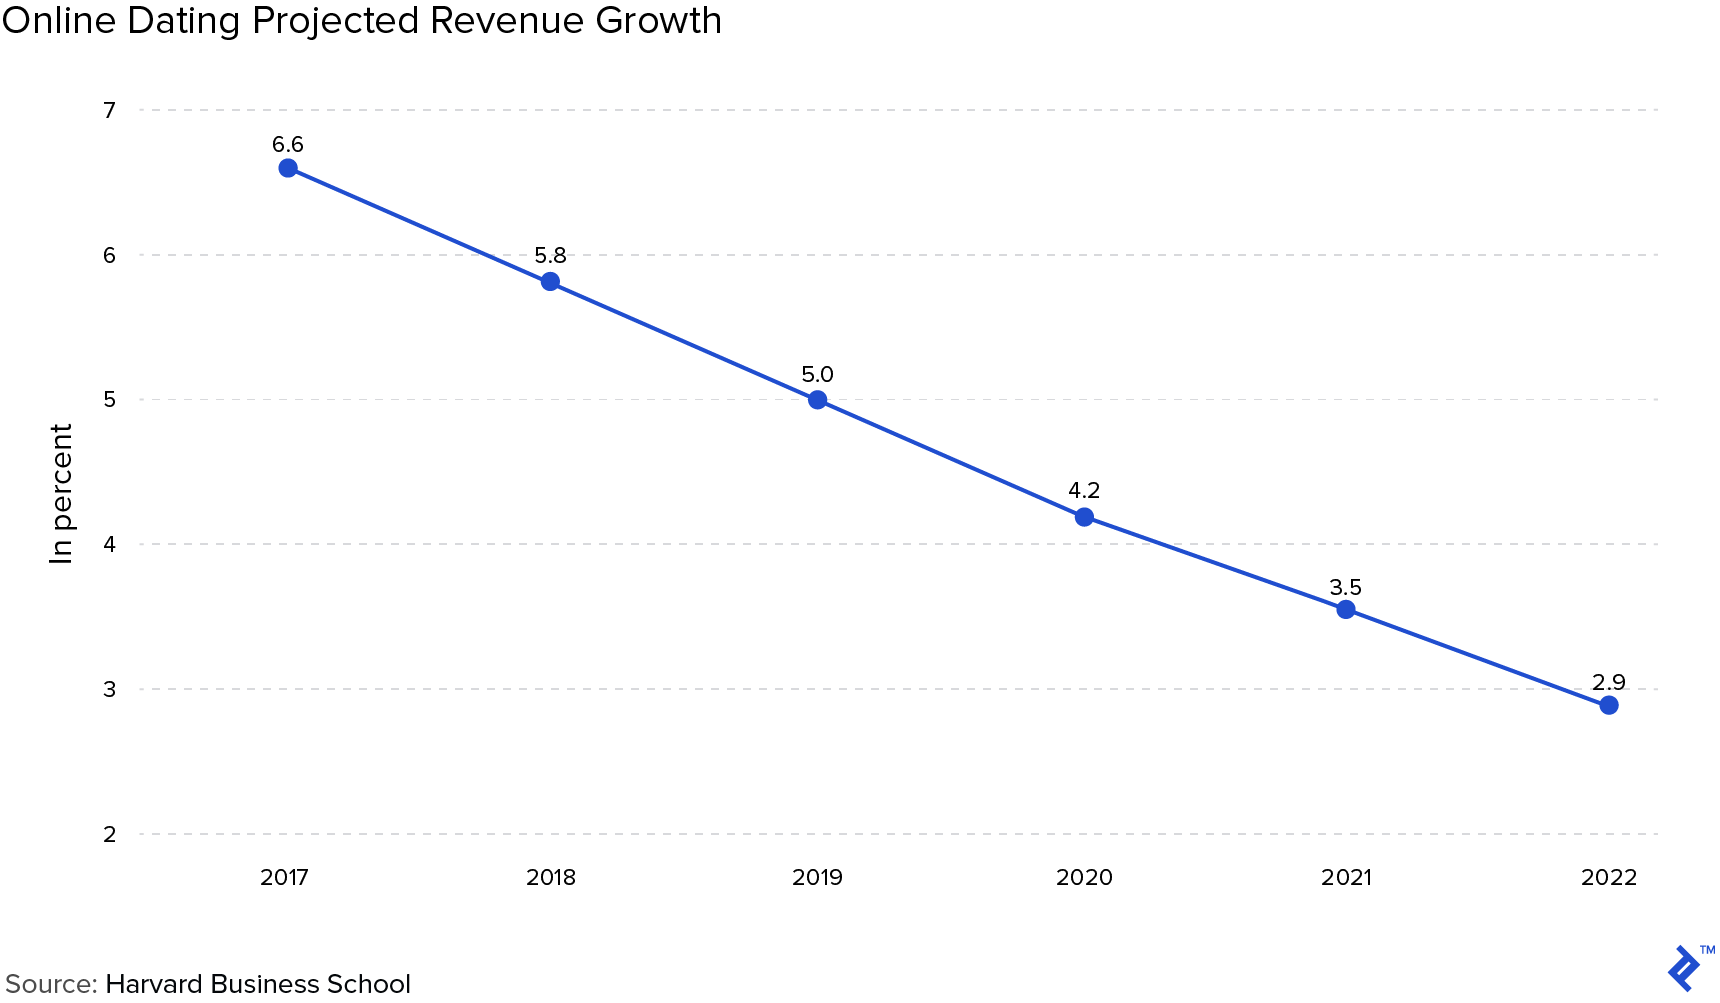 Chart: Online Dating Projected Revenue